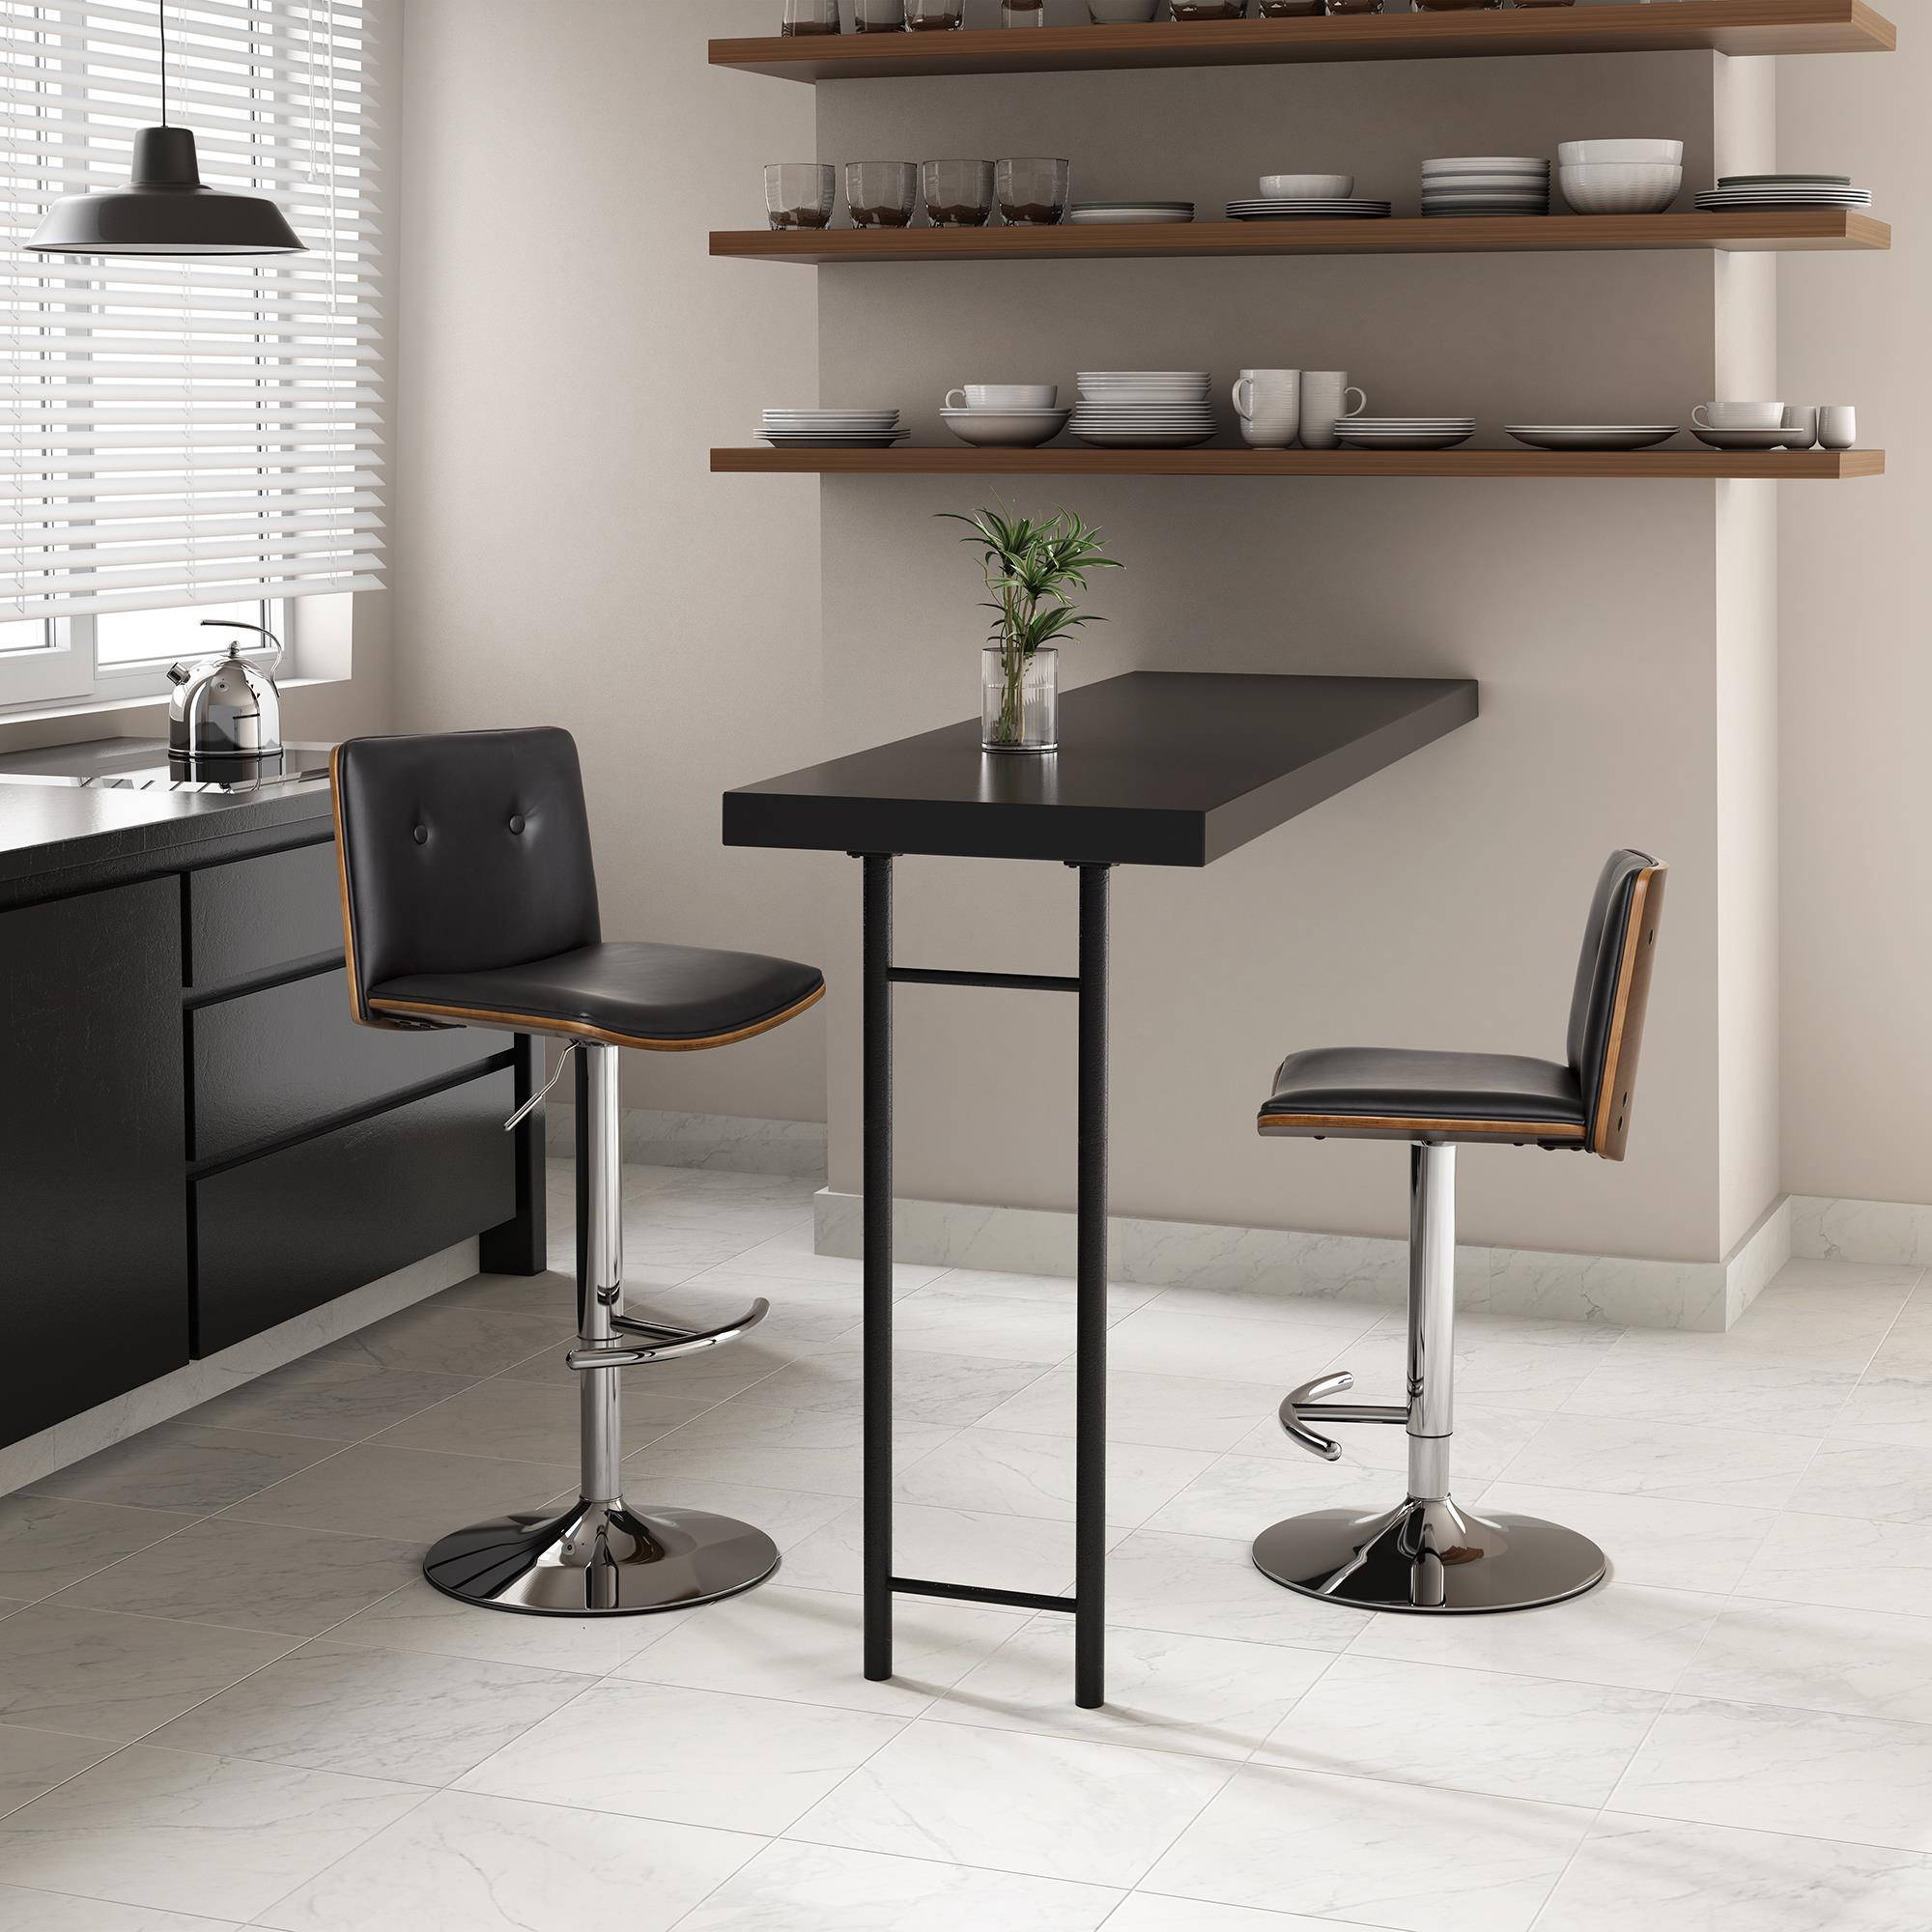 Dorel Home Products Wexford Swivel Barstool, Faux Leather/Walnut, Multiple Colors